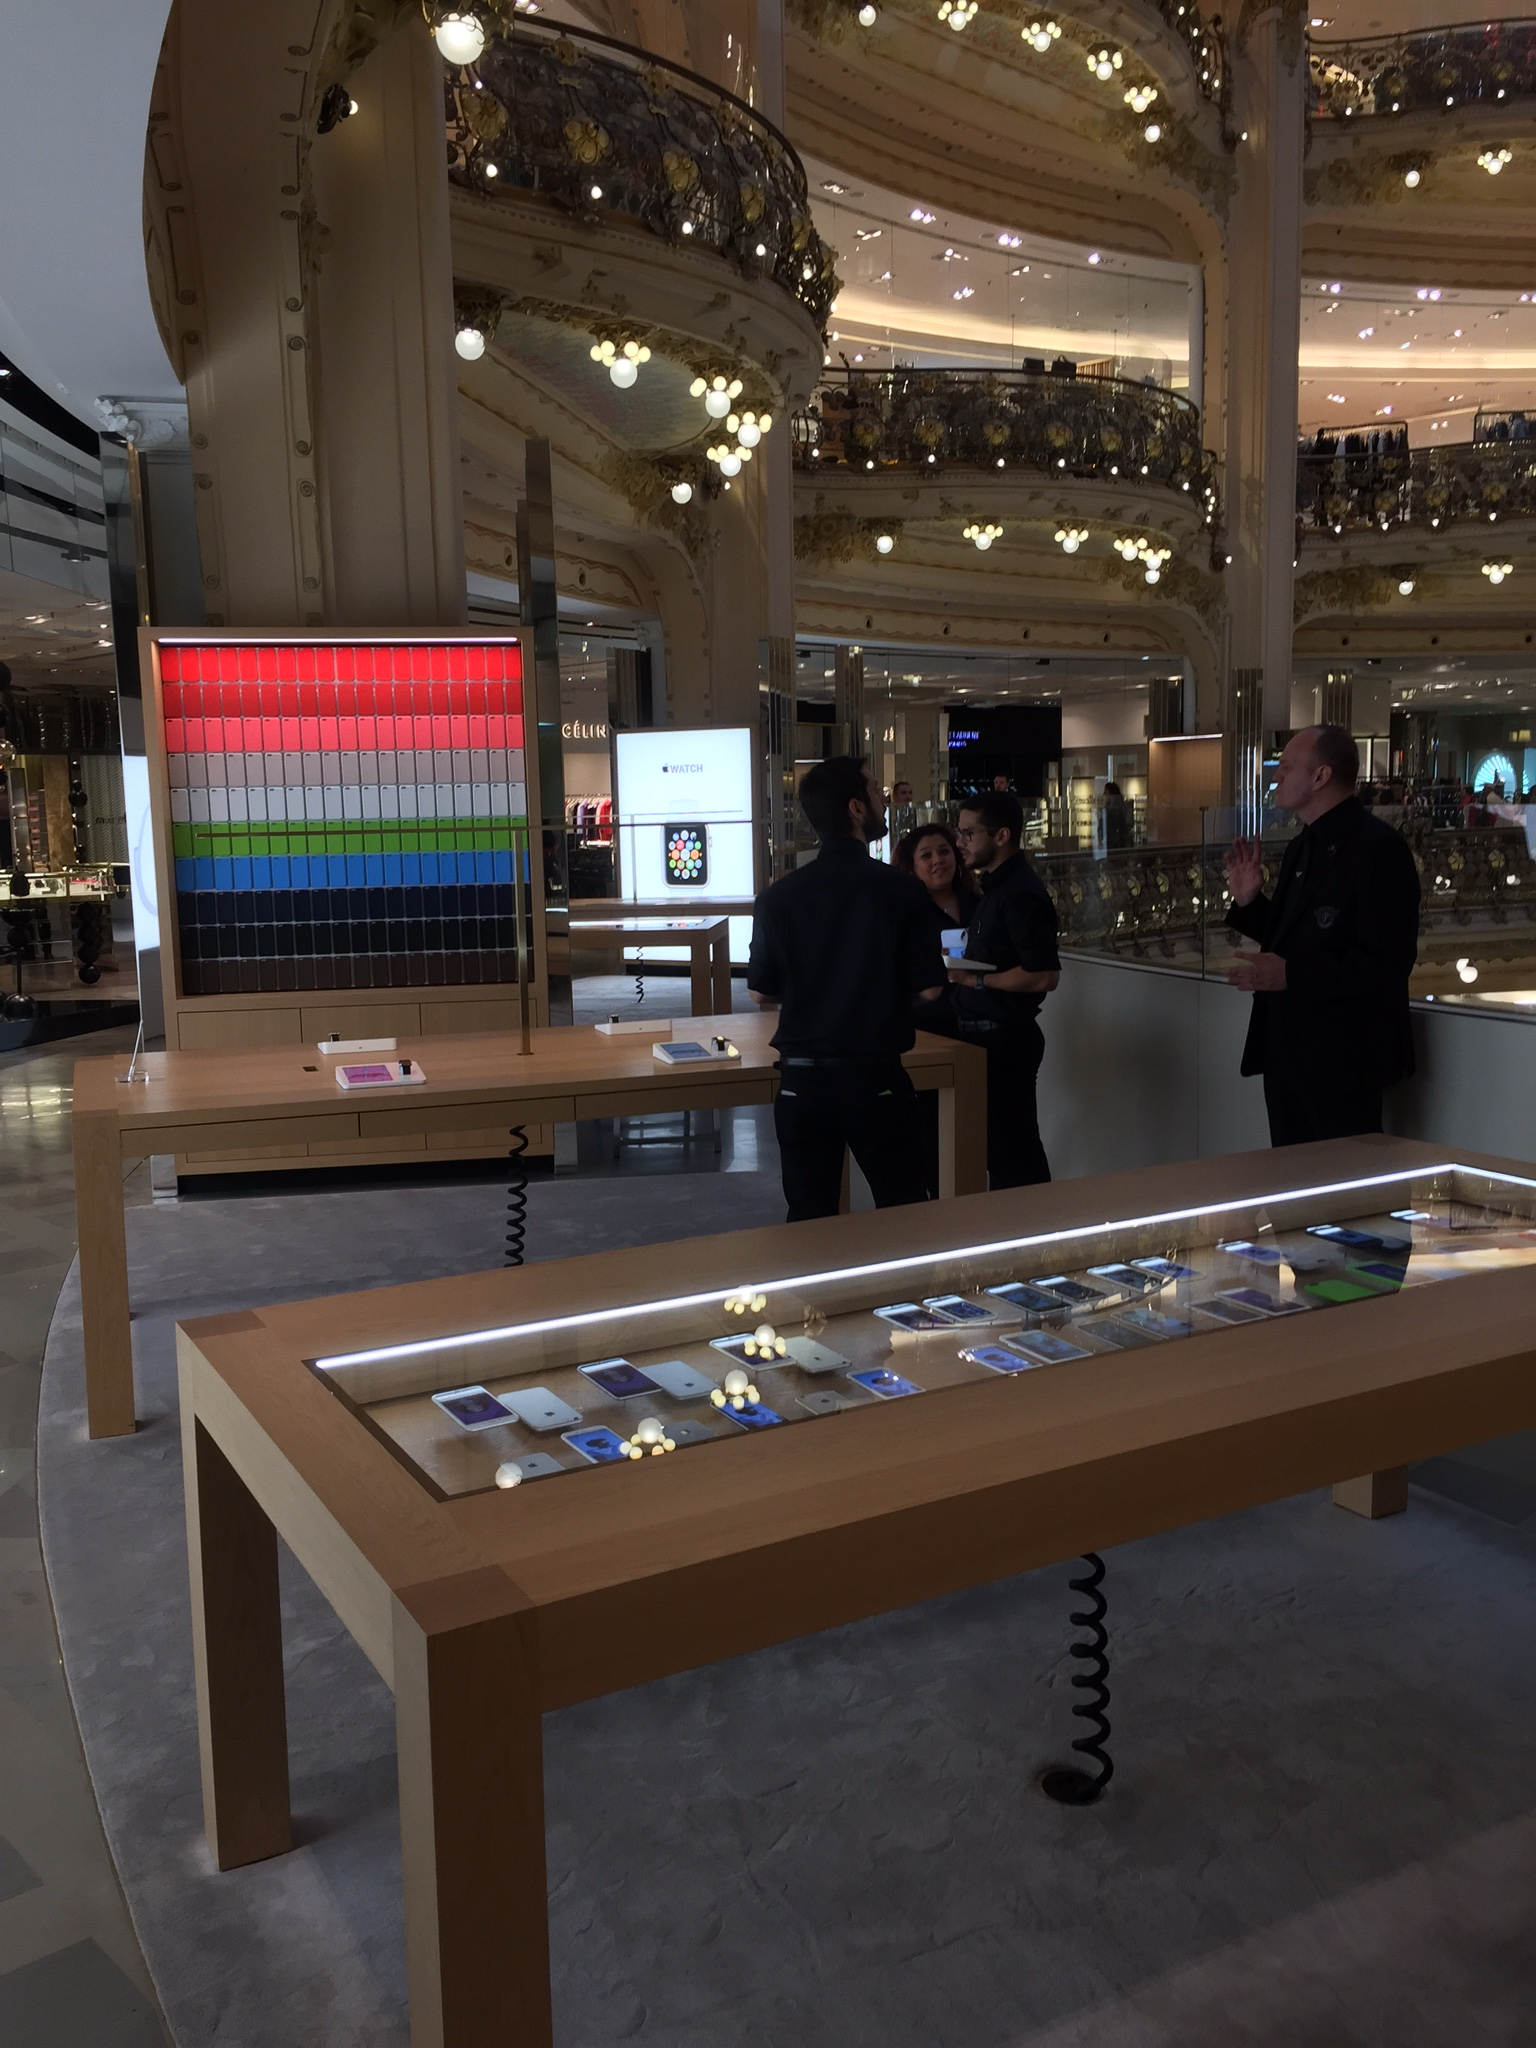 Visita Apple Store Galeries Lafayette Parigi